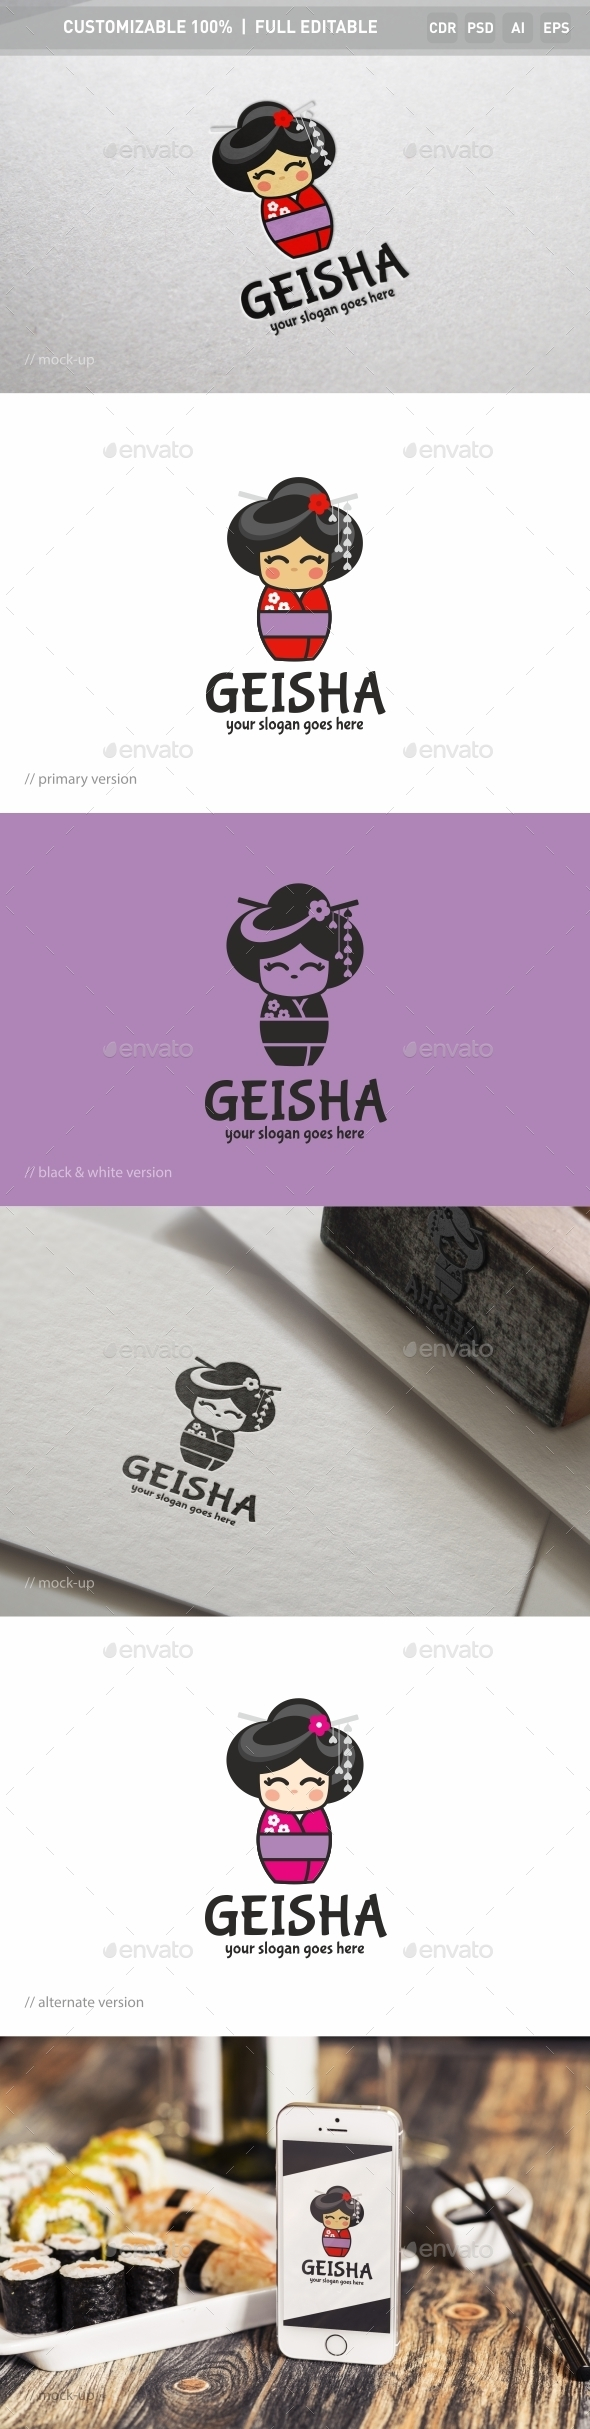 Geisha Logo Template - Objects Logo Templates